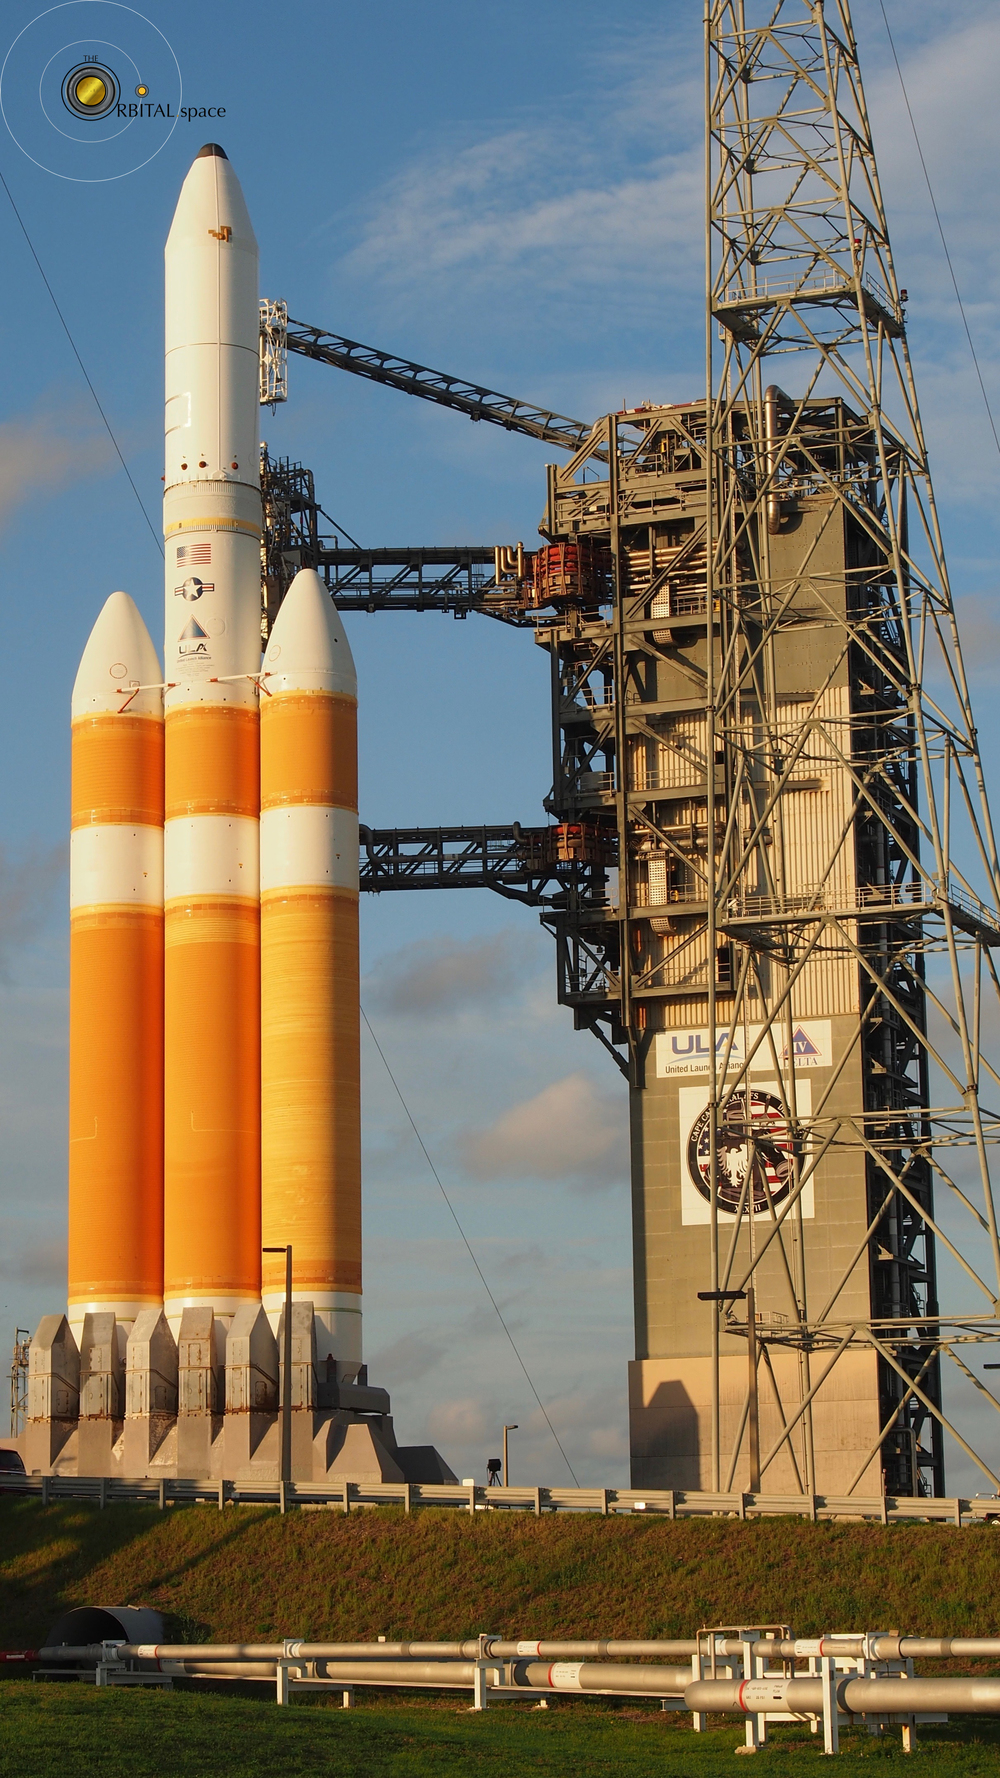 Delta IV Heavy and tower